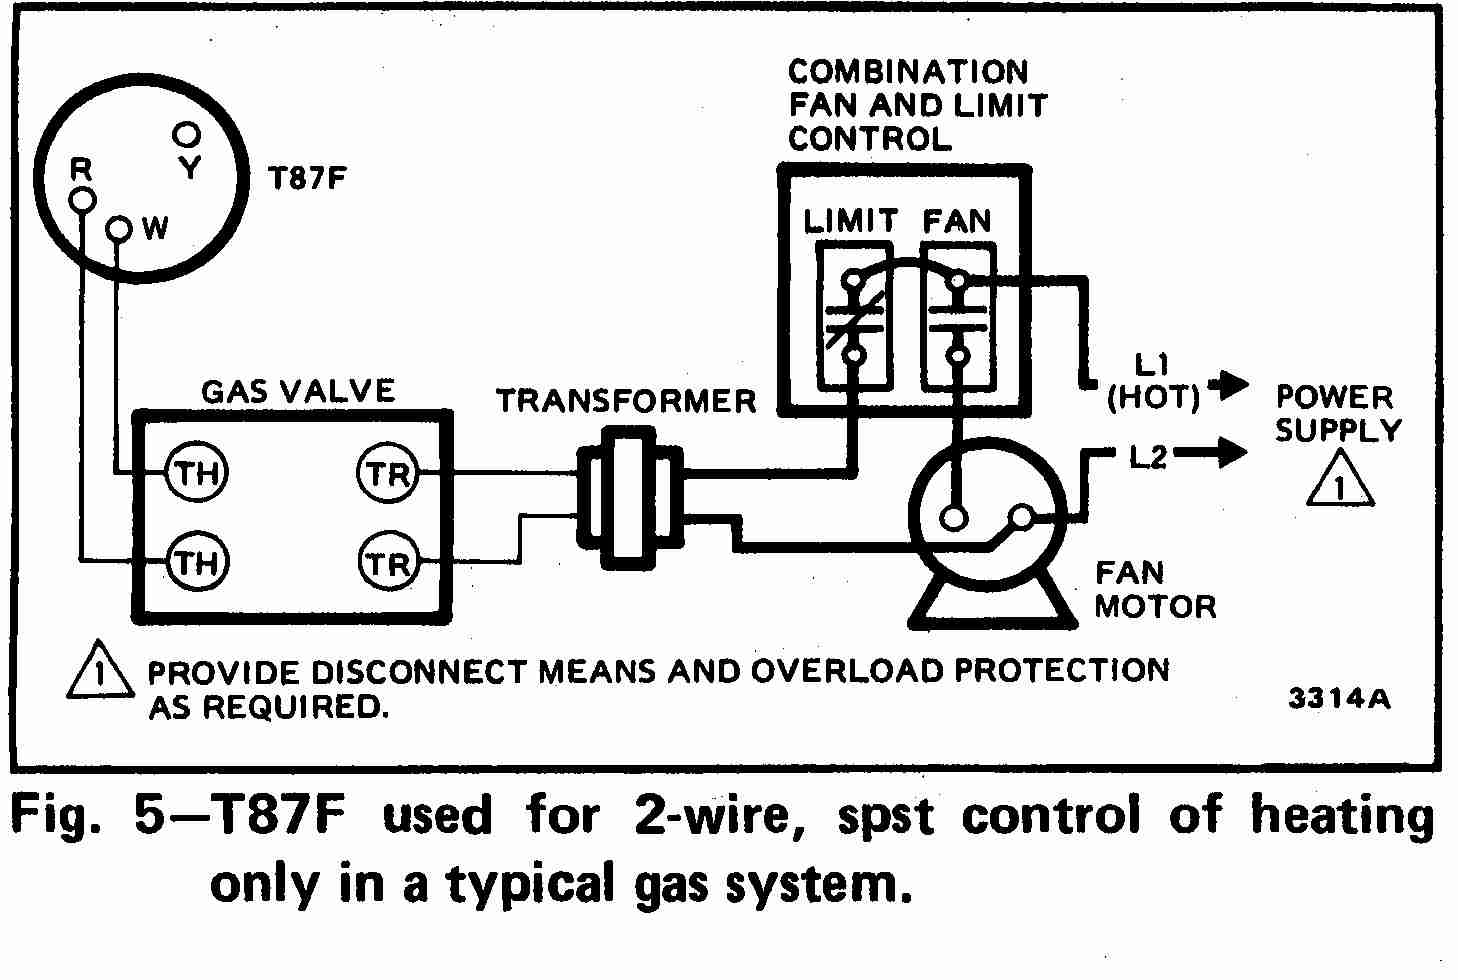 rib relay 2 wire thermostat wiring diagram touch screen radio zone valve wiring installation instructions guide to heating tt t87f 0002 2wg djf zone valve wiringphp rib relay 2 wire thermostat wiring diagram